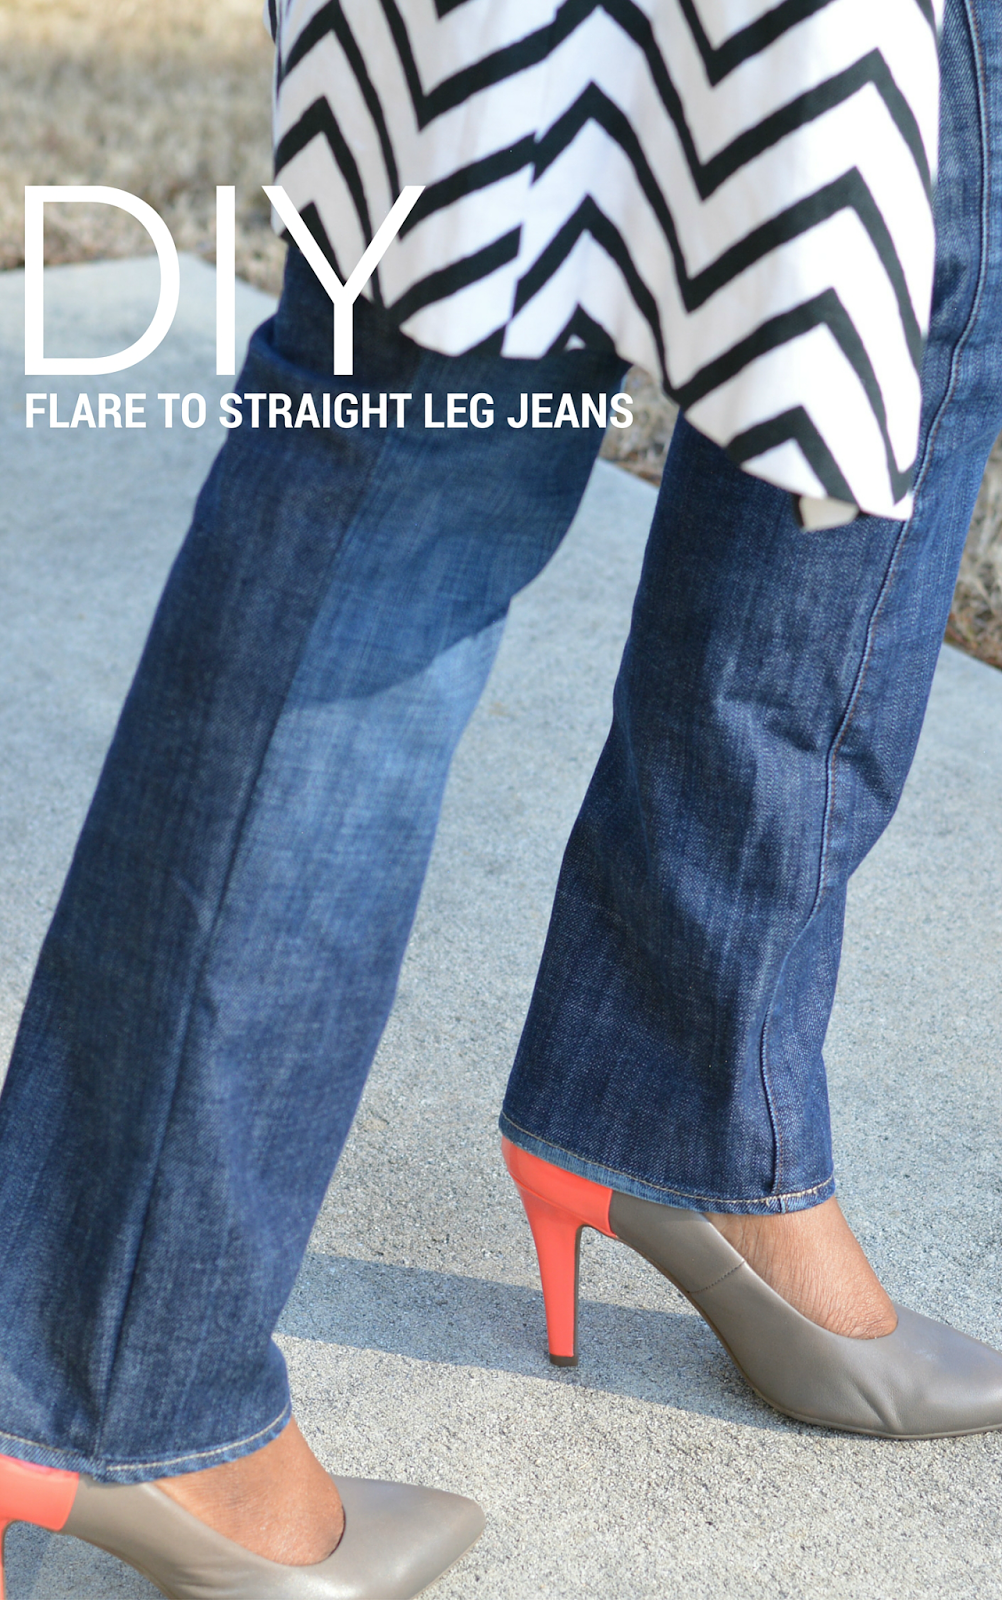 Diy boot cut jeans to skinny jeans